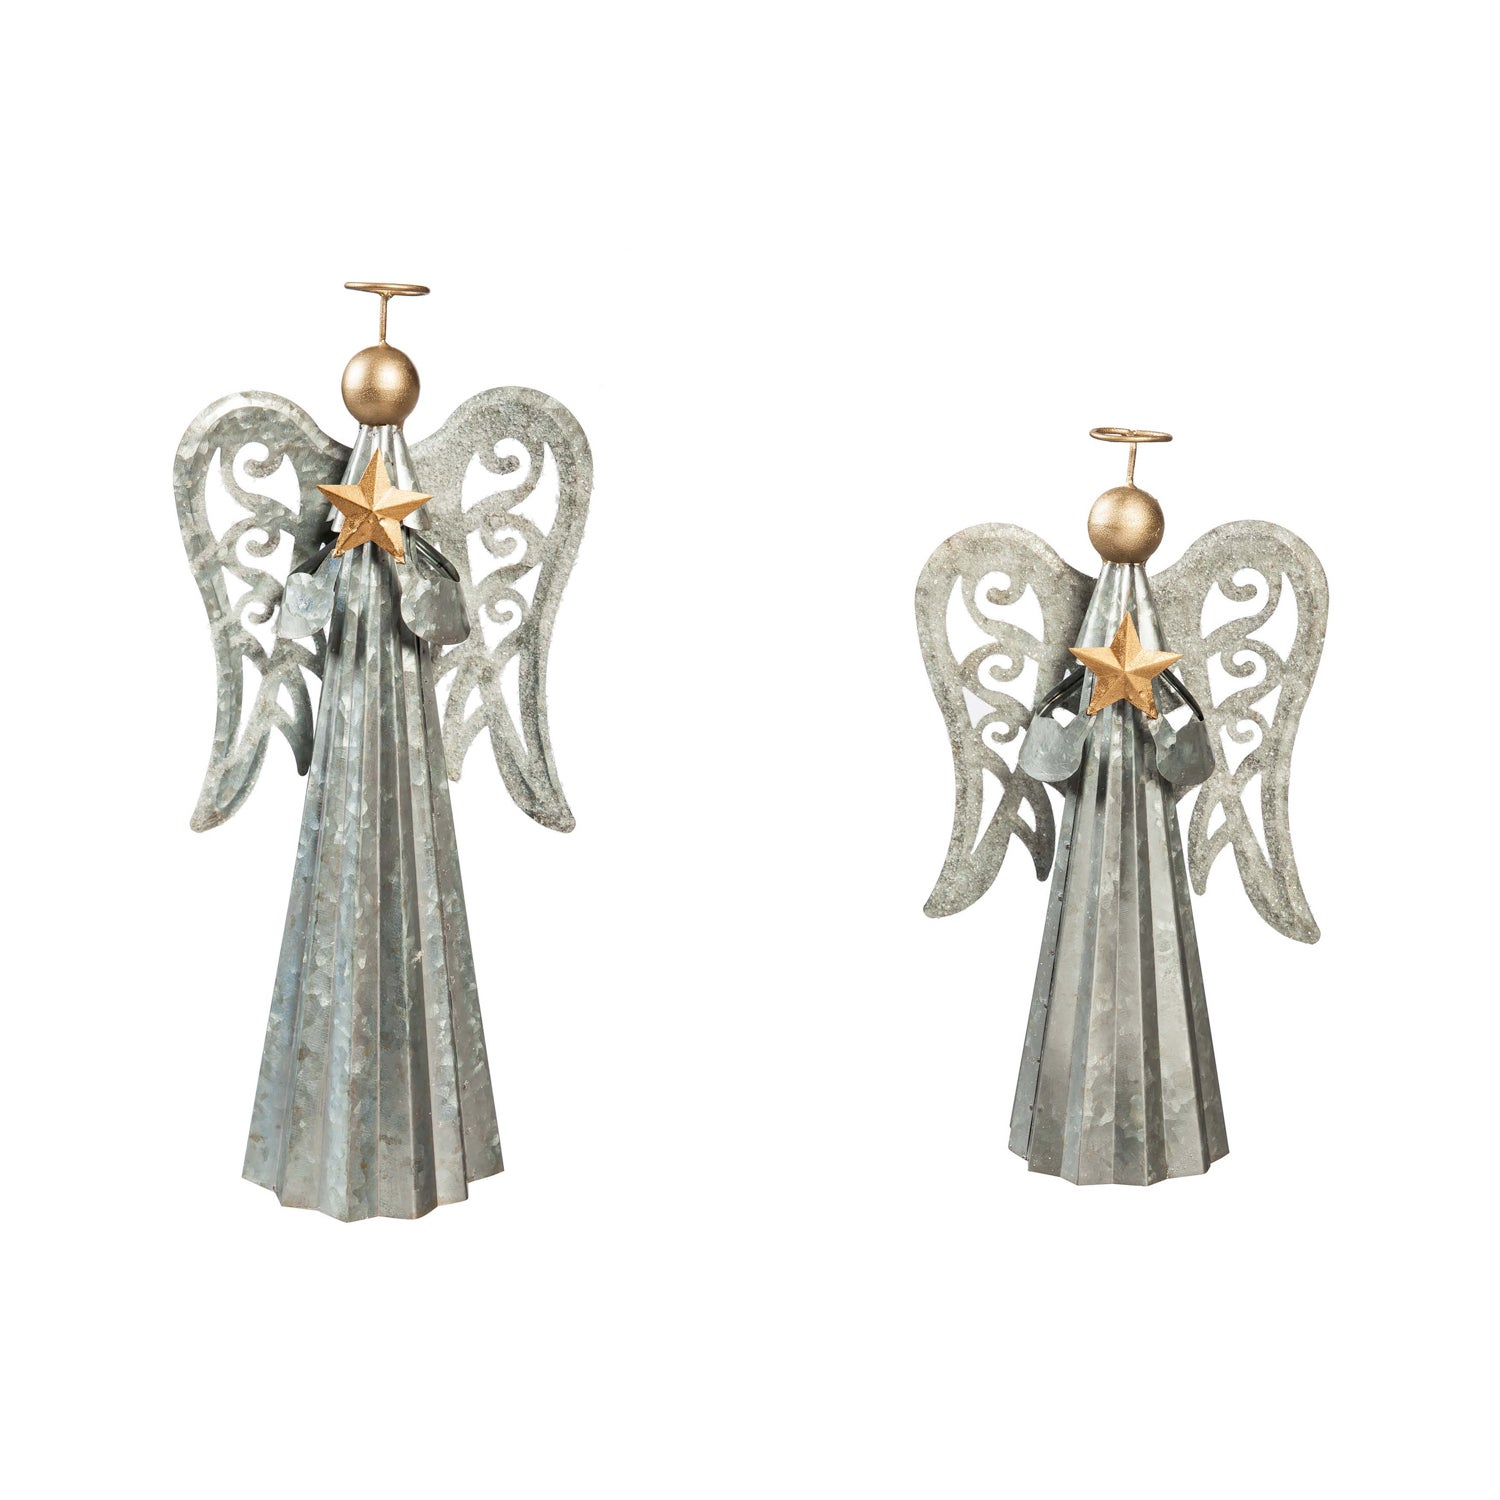 Metal Angel With Star Tabletop Decor, Set of 2